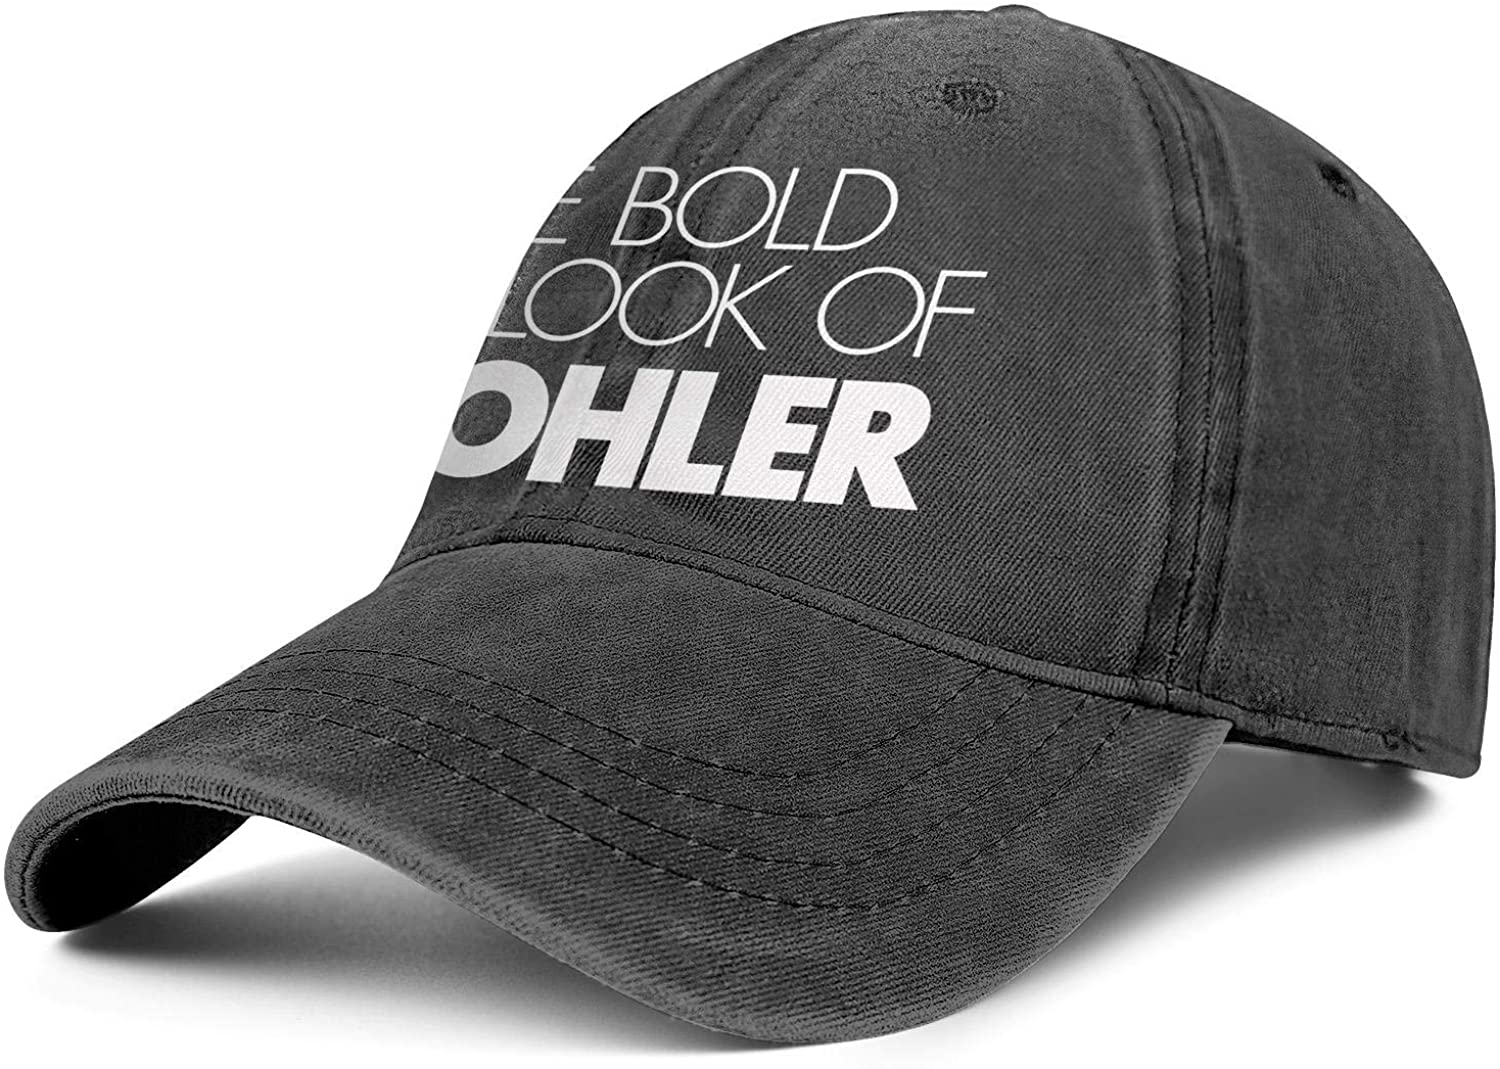 Vintage Washed Cap The-Bold-Look-of-Kohler-White-Logo- Pattern Unisex Dad Adjustable Hats